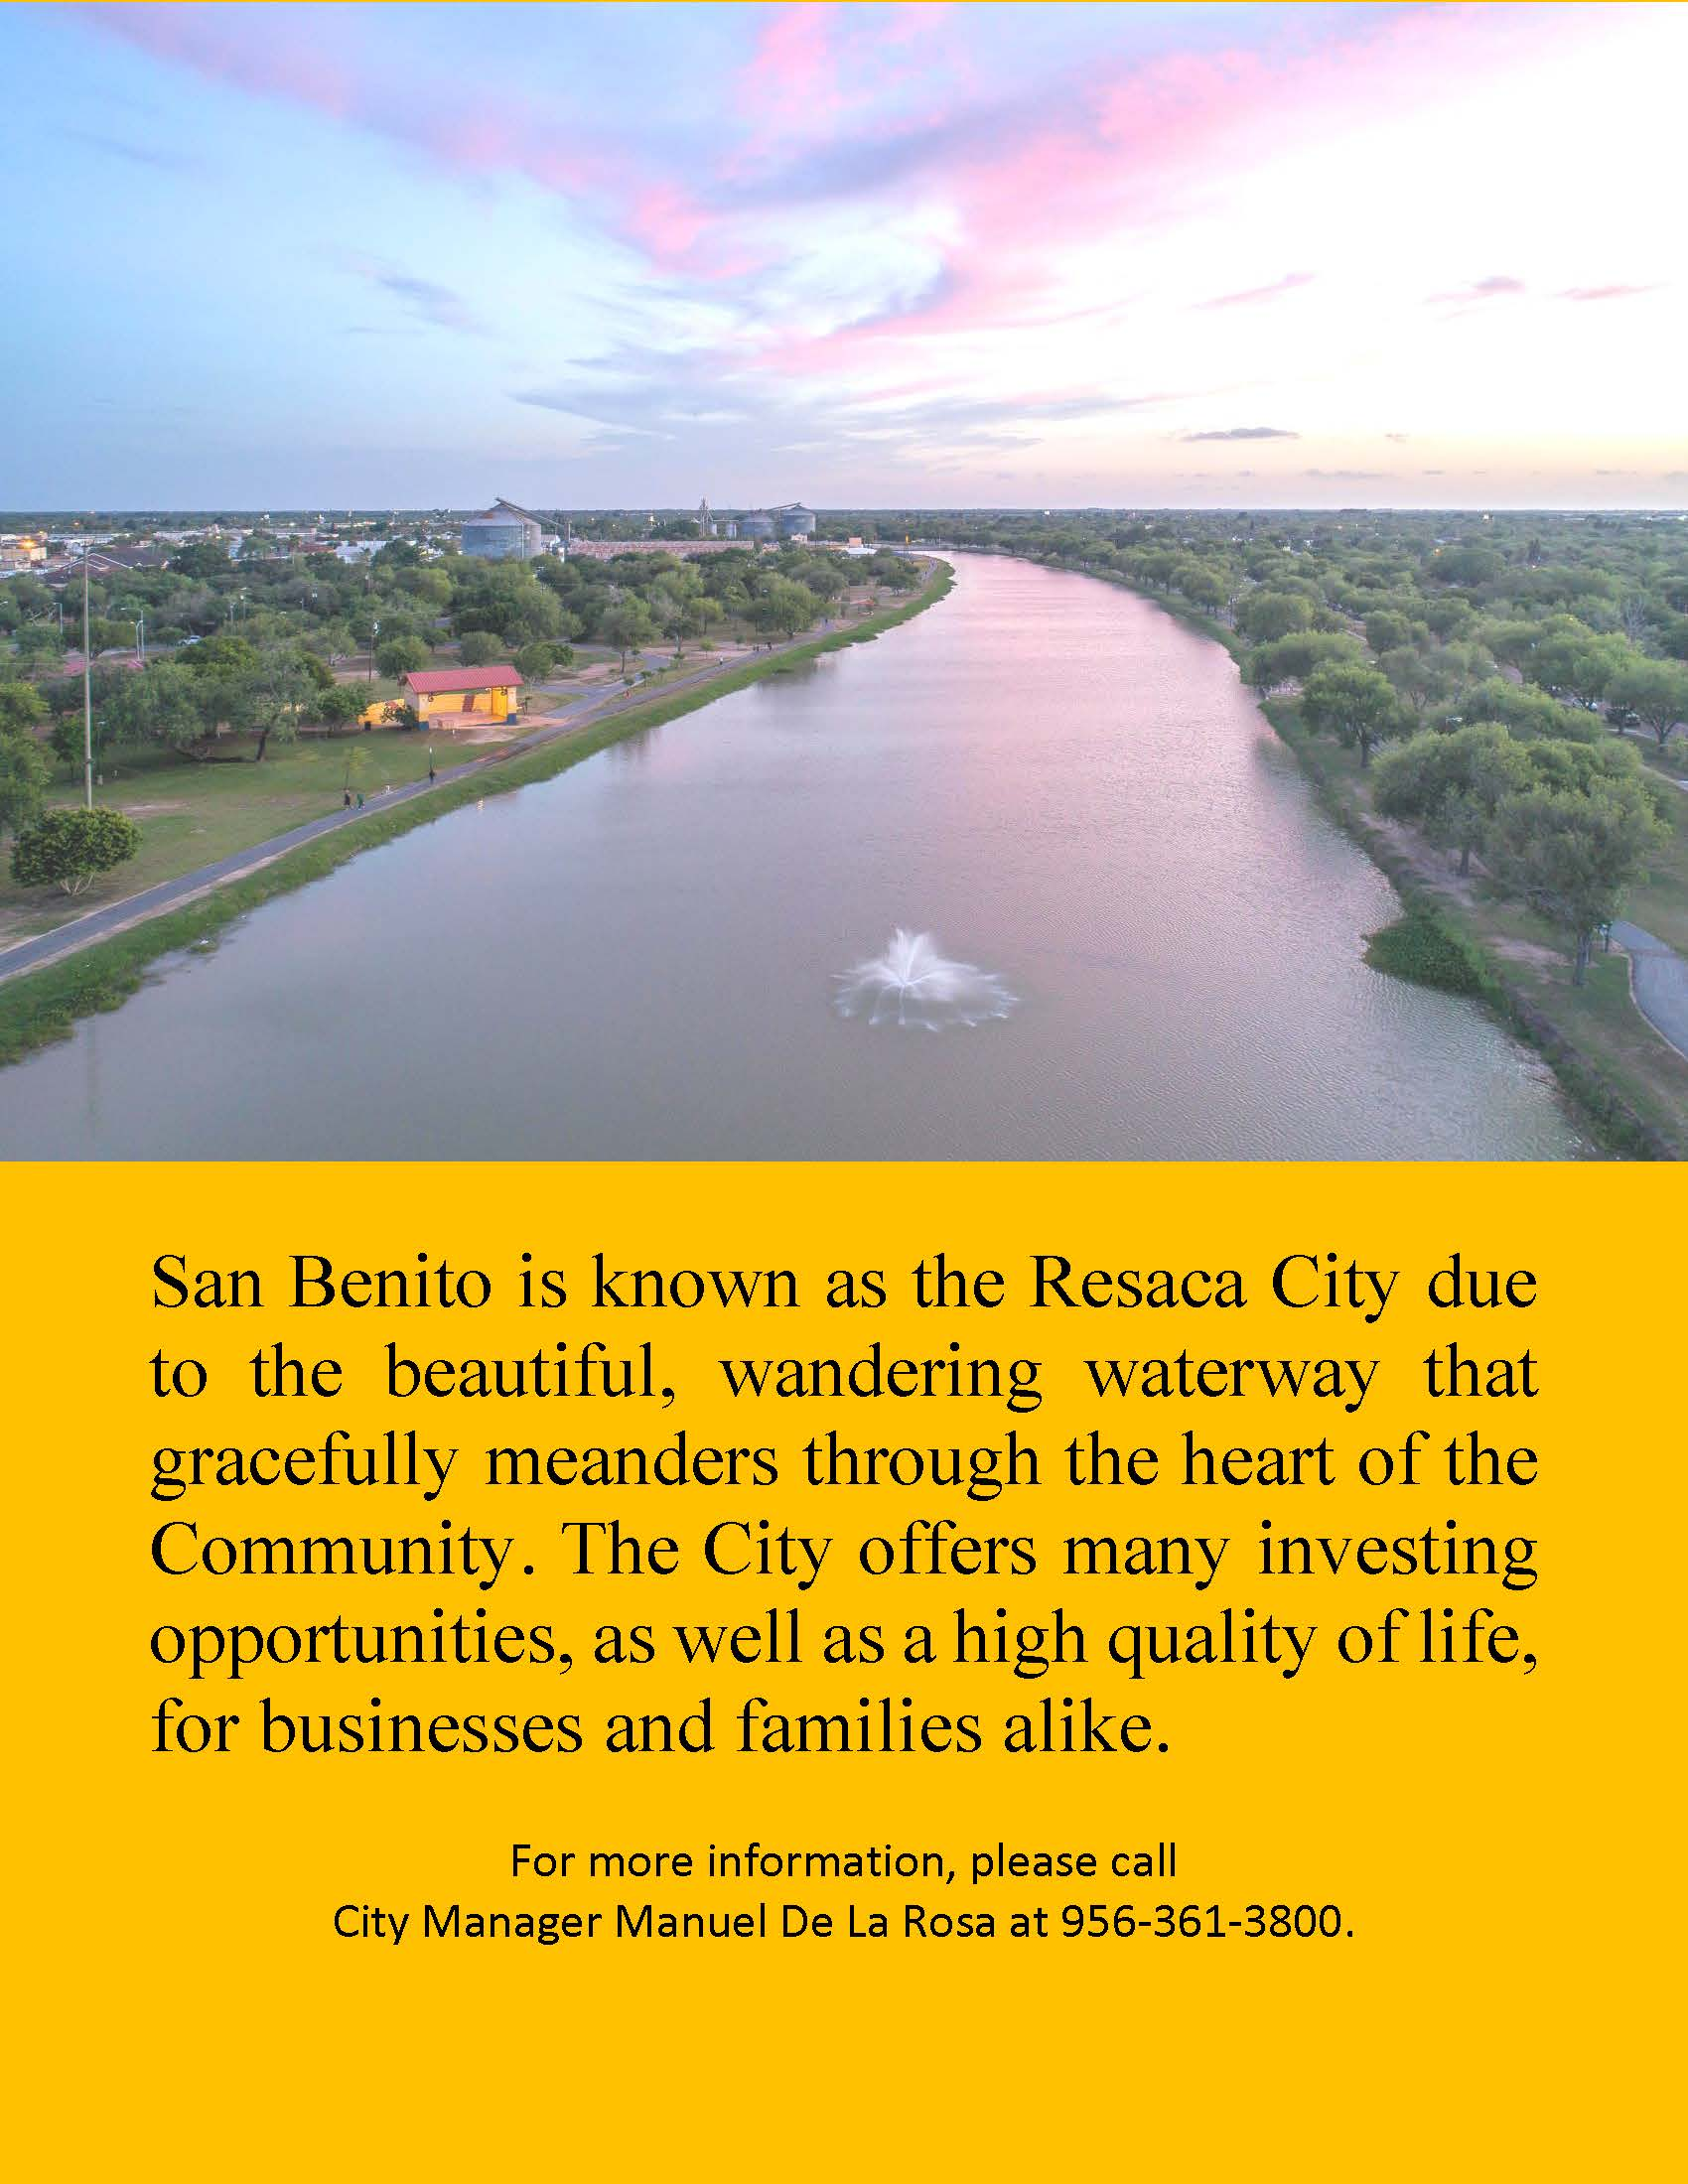 San Benito is known as the Resaca City due to the beautiful